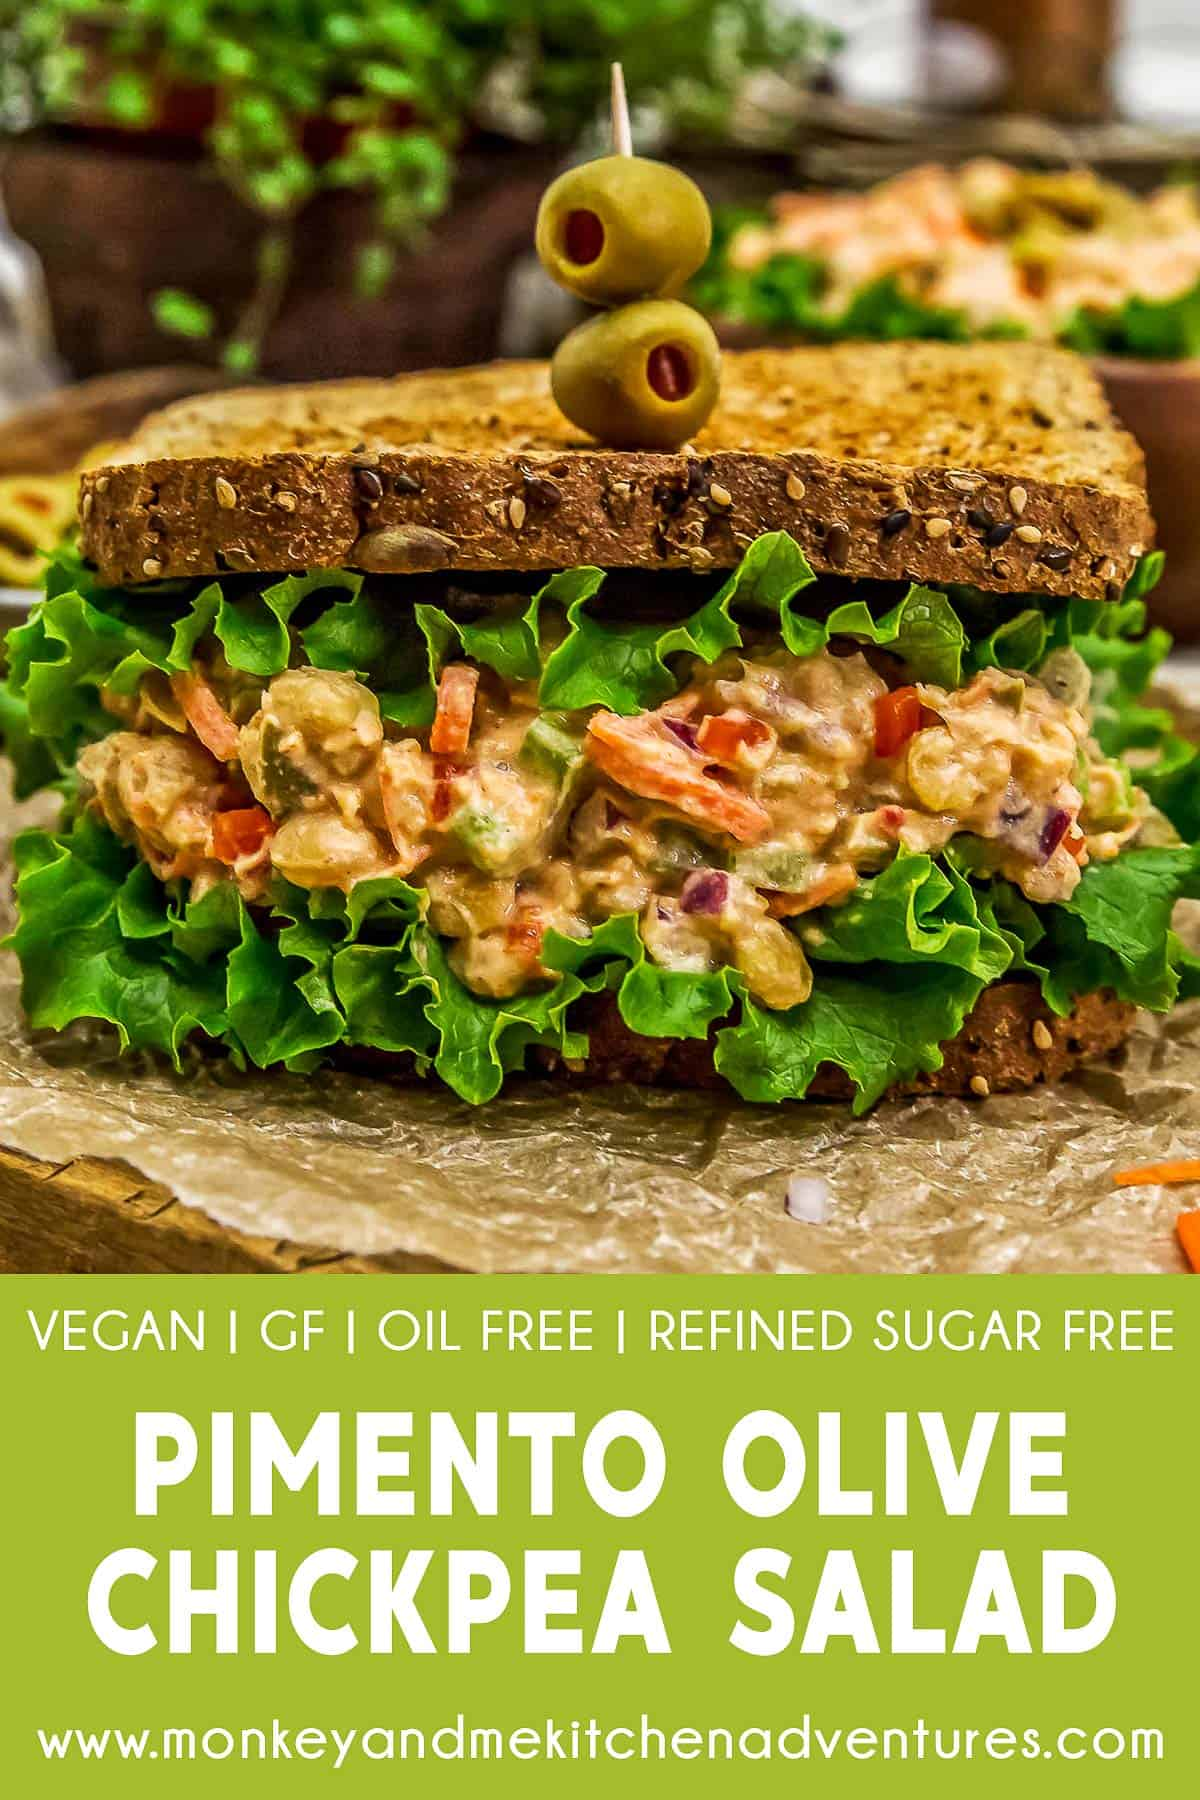 Pimento Olive Chickpea Salad with text description